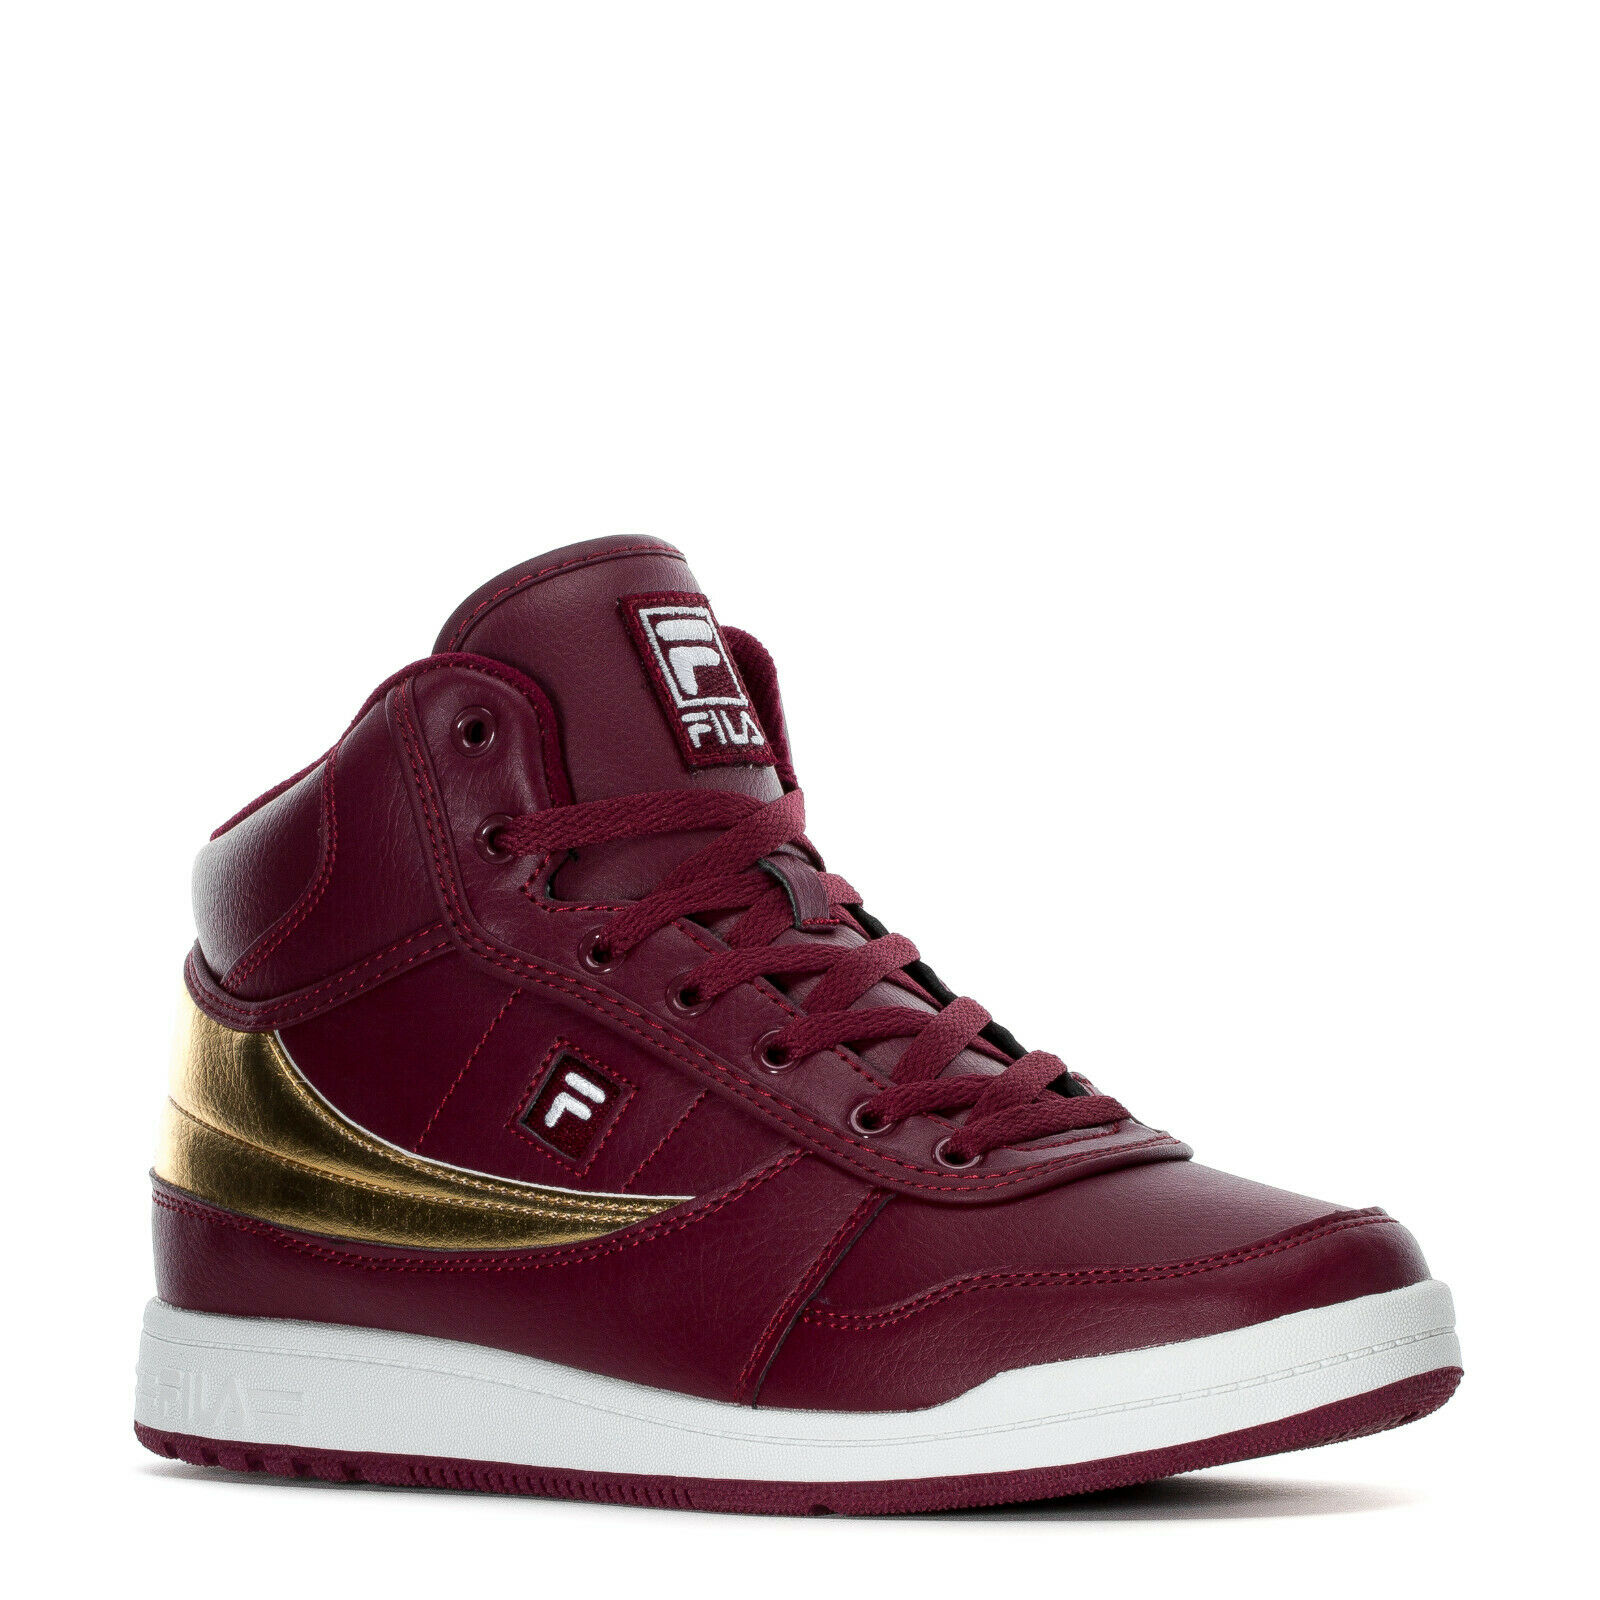 FILA BBN 84 NS MID LEATHER TRAINER SPORTS SNEAKERS MEN SHOES RED SIZE 10 NEW